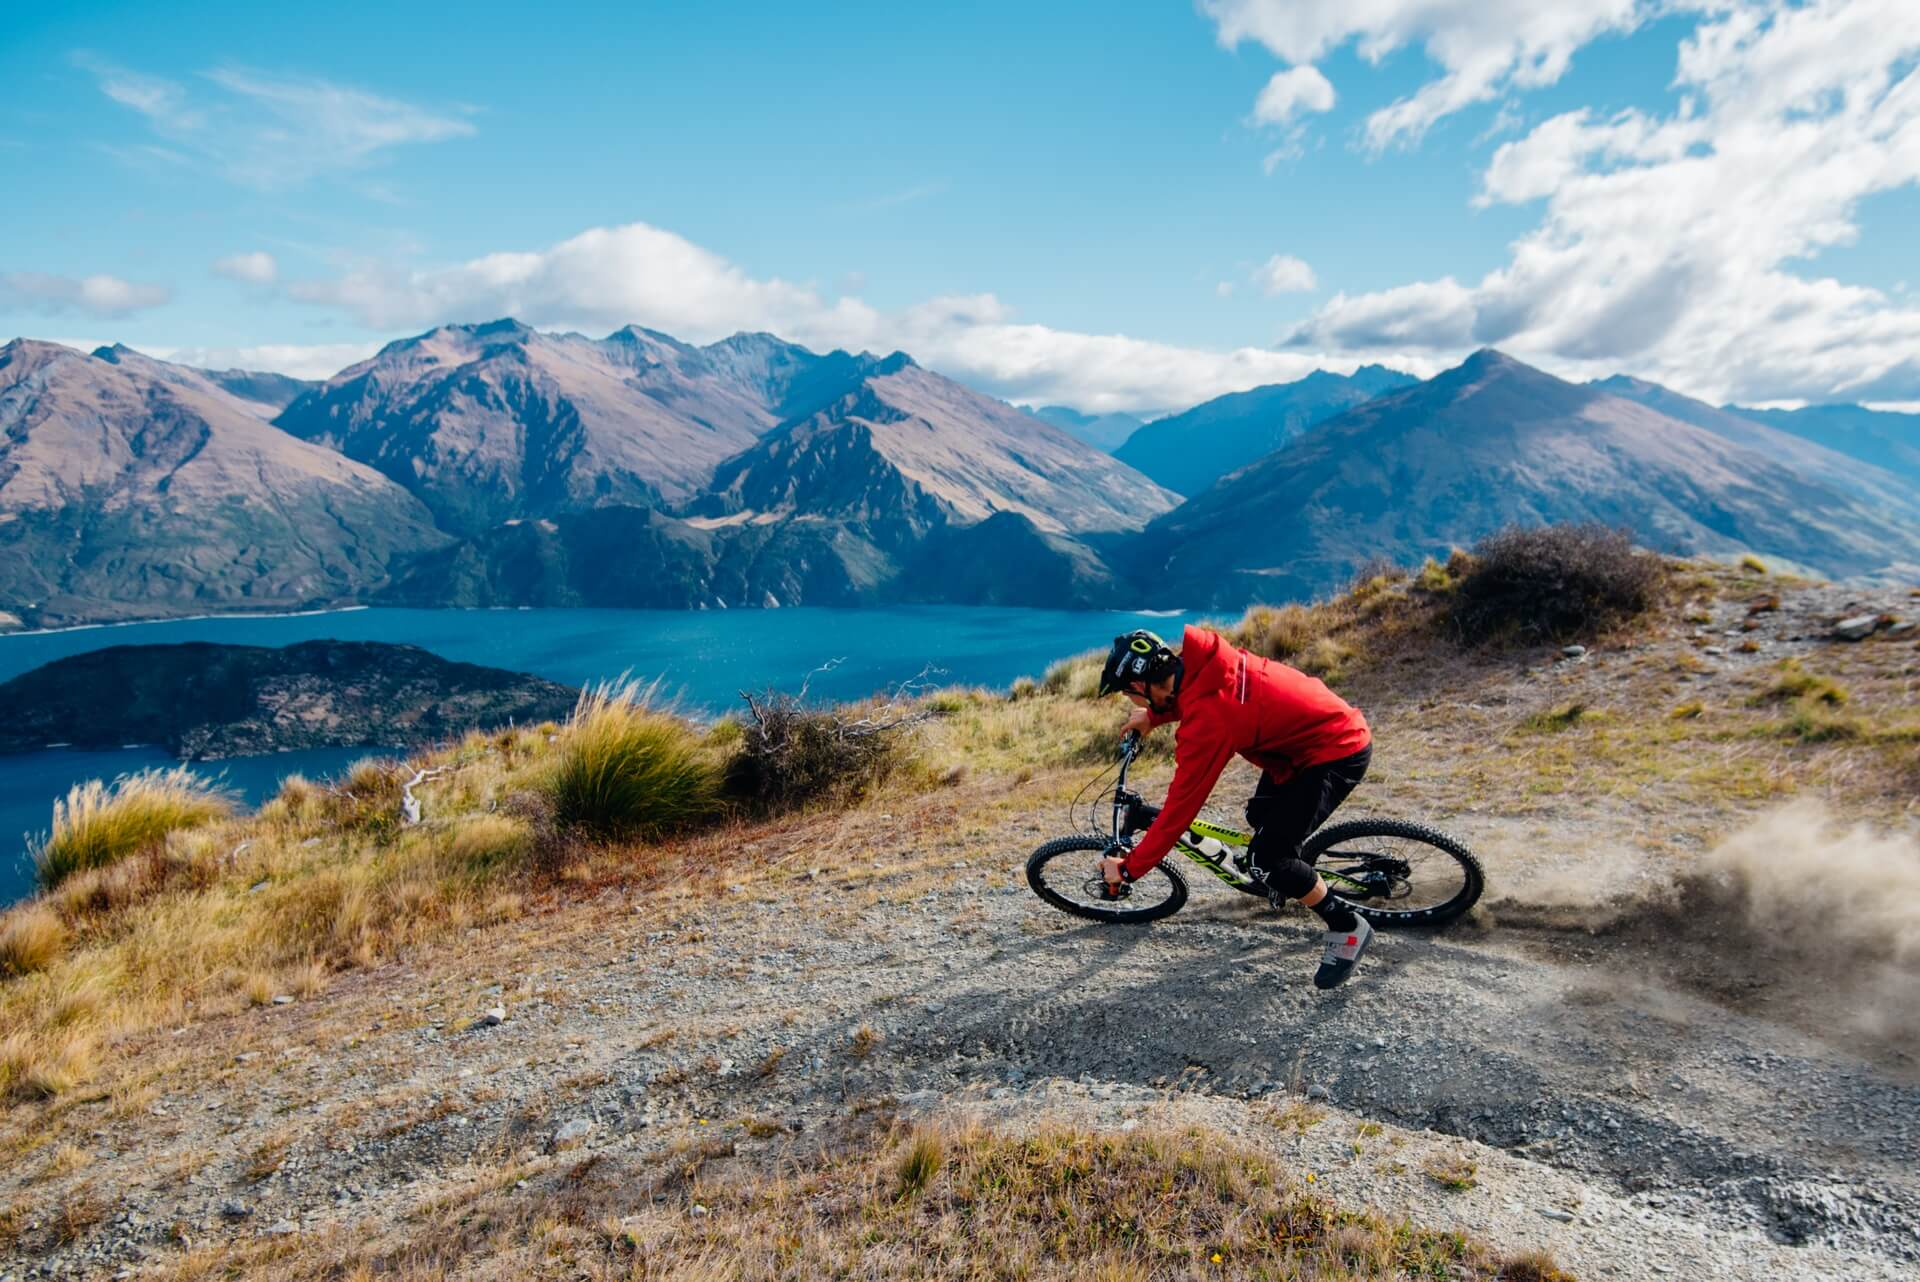 Exploring the Wanaka bike trails